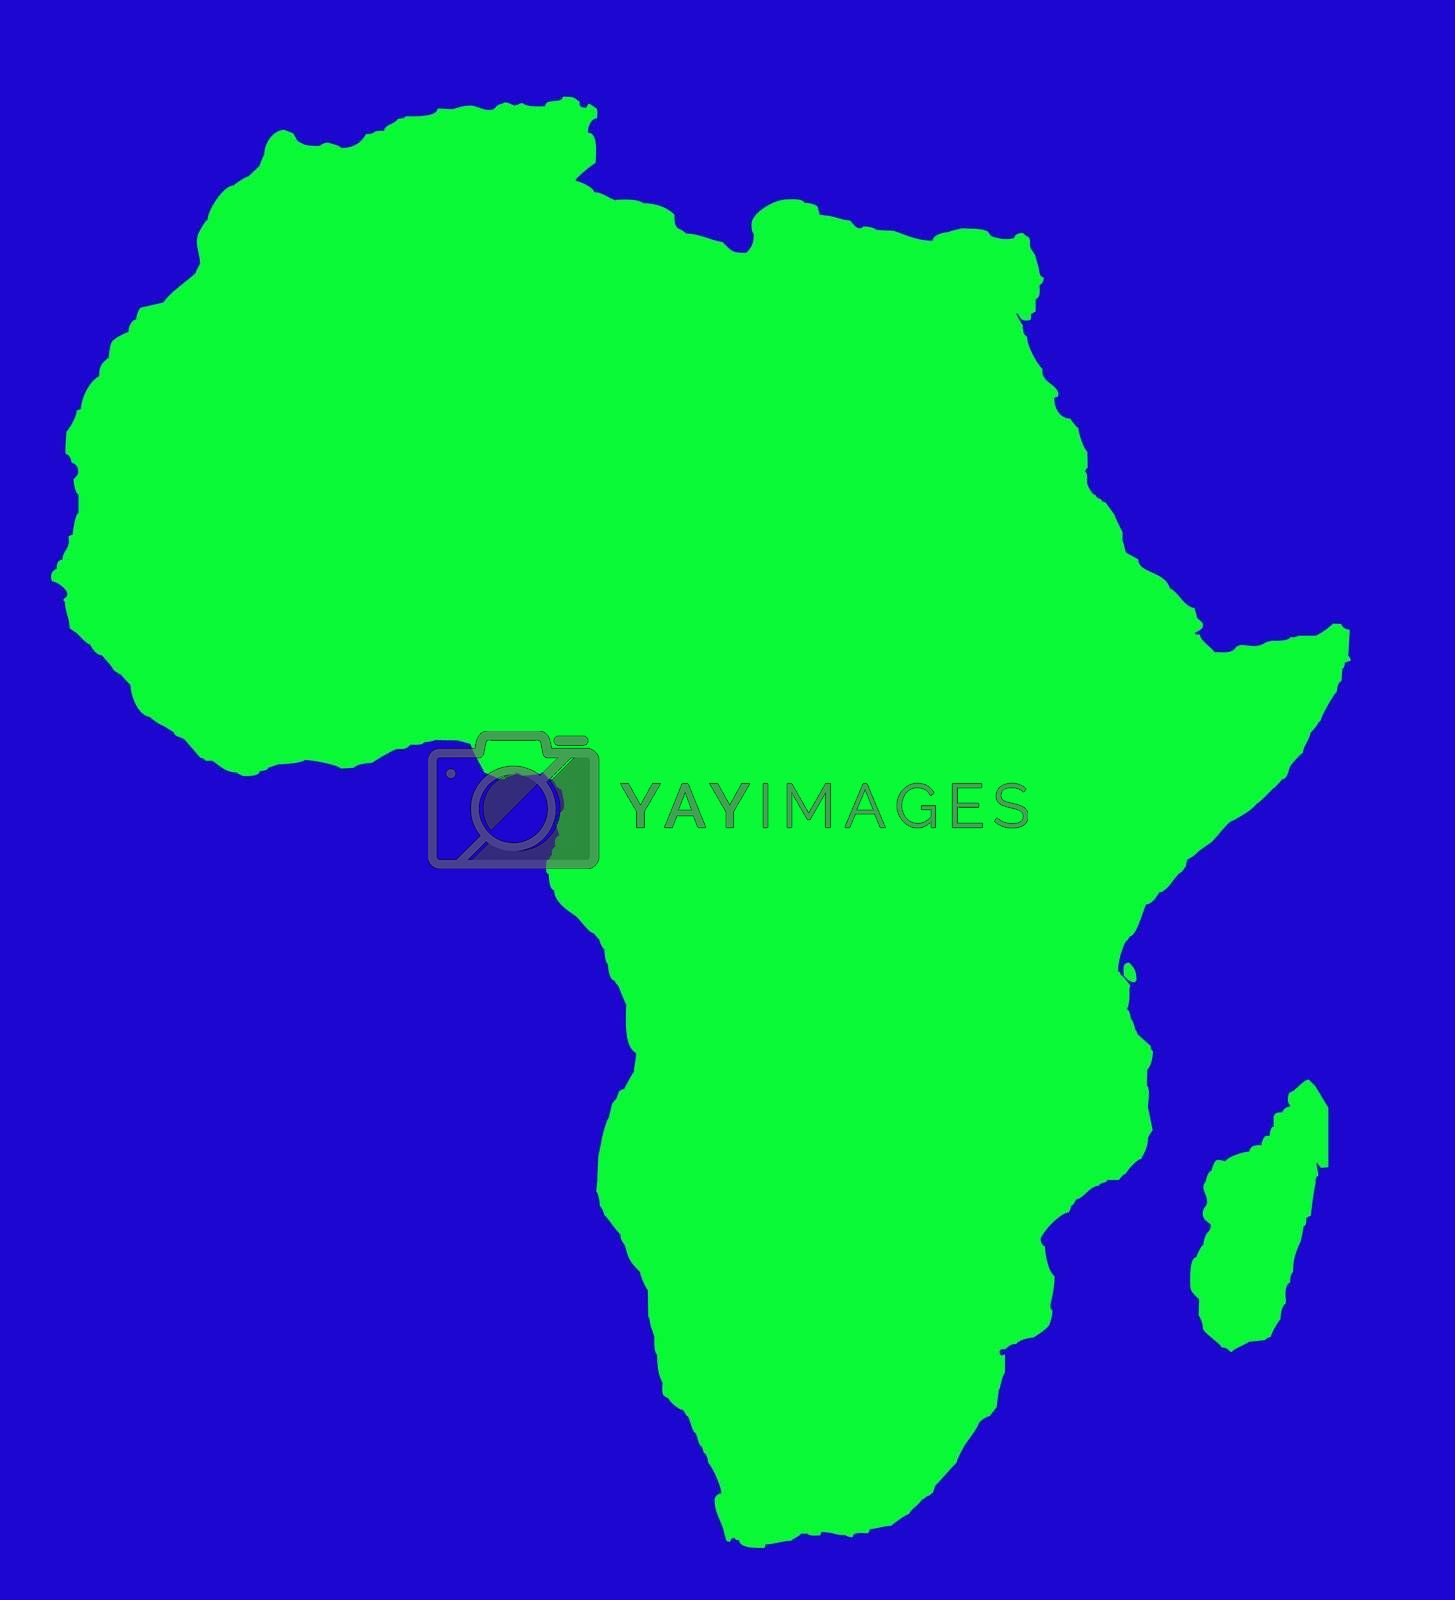 Outline Map Of Africa Continent In Green Royalty Free Stock Image Stock Photos Royalty Free Images Vectors Footage Yayimages